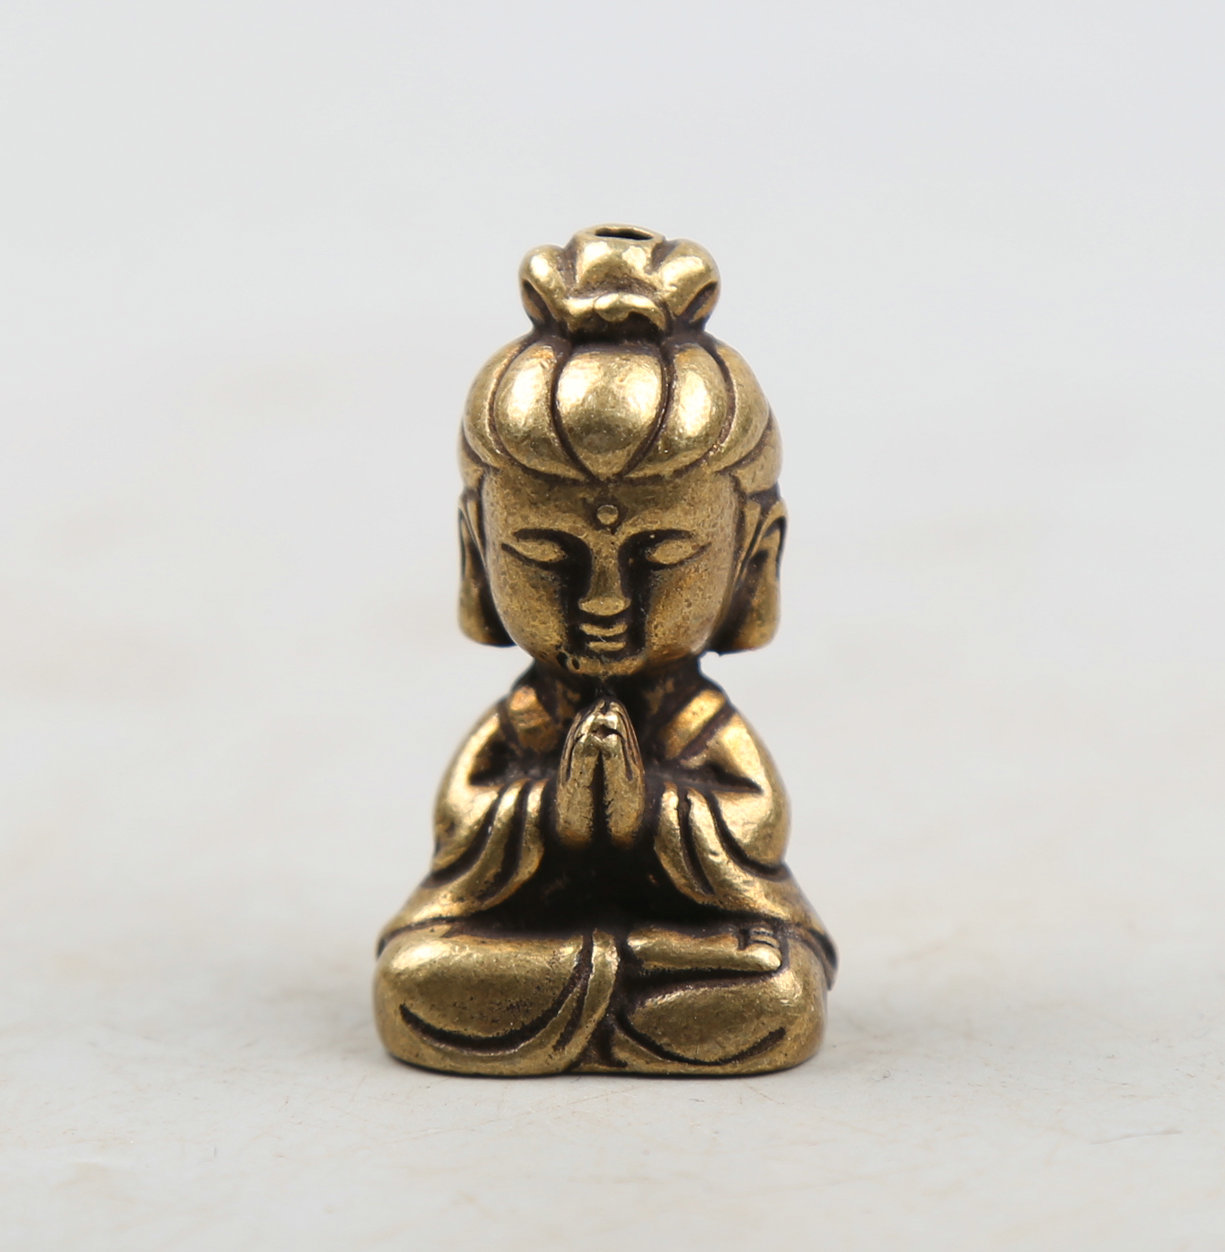 36MM 1 4 quot Collect Curio Rare Chinese Fengshui Bronze Exquisite Buddhism Cartoon Sit Guanyin Mini Kwan yin Pendant Statuary 42g in Statues amp Sculptures from Home amp Garden